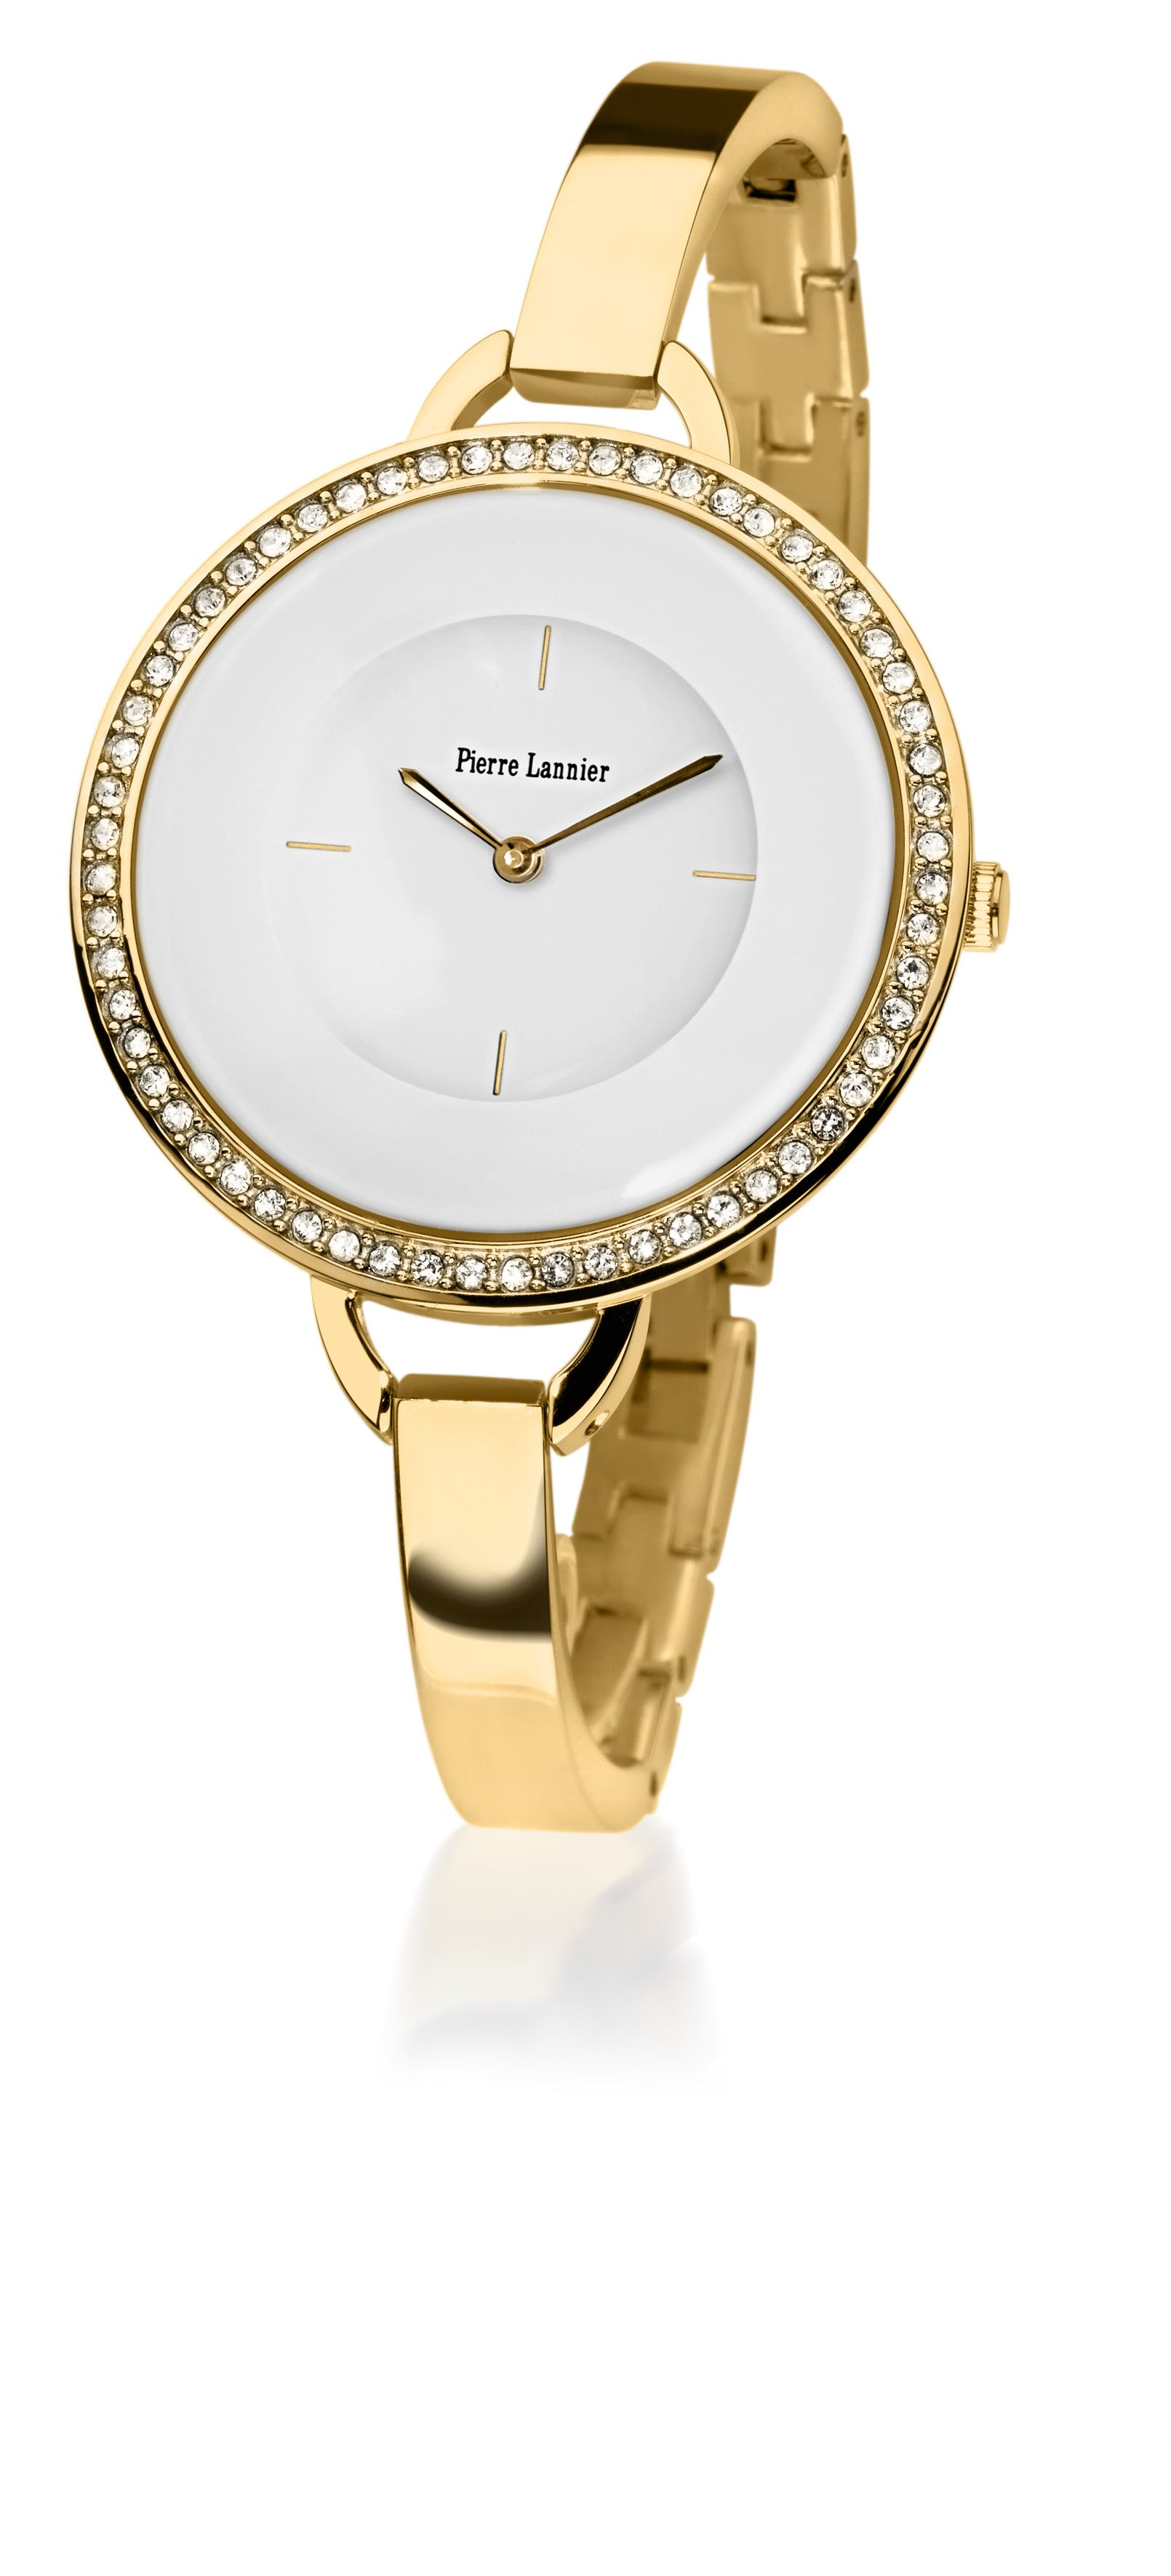 rs paris for lannier ladies retail pierre watches dress price pin